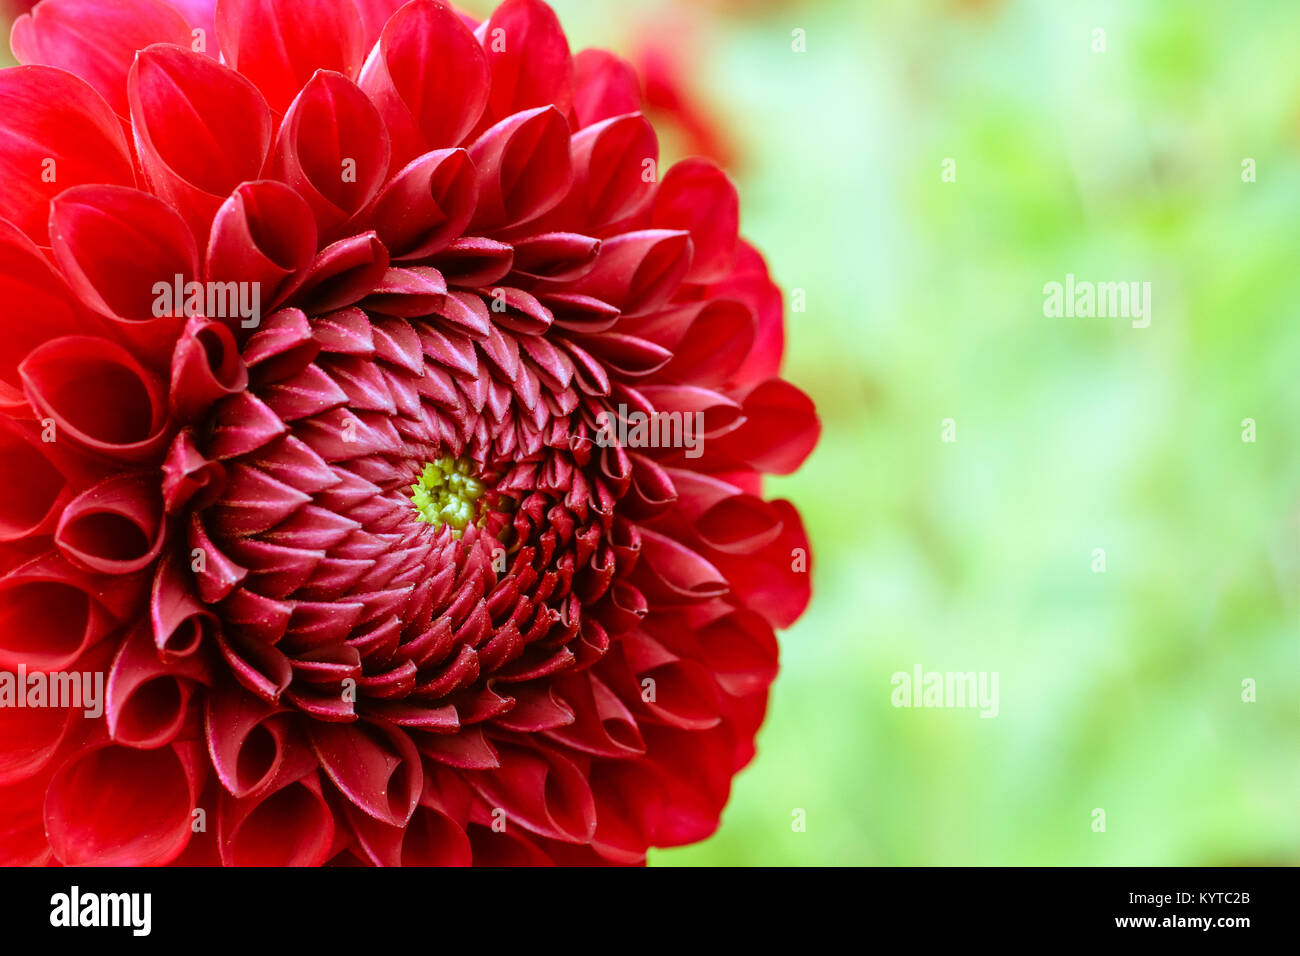 Red dahlia fresh flower details macro photography. Photo in color ...